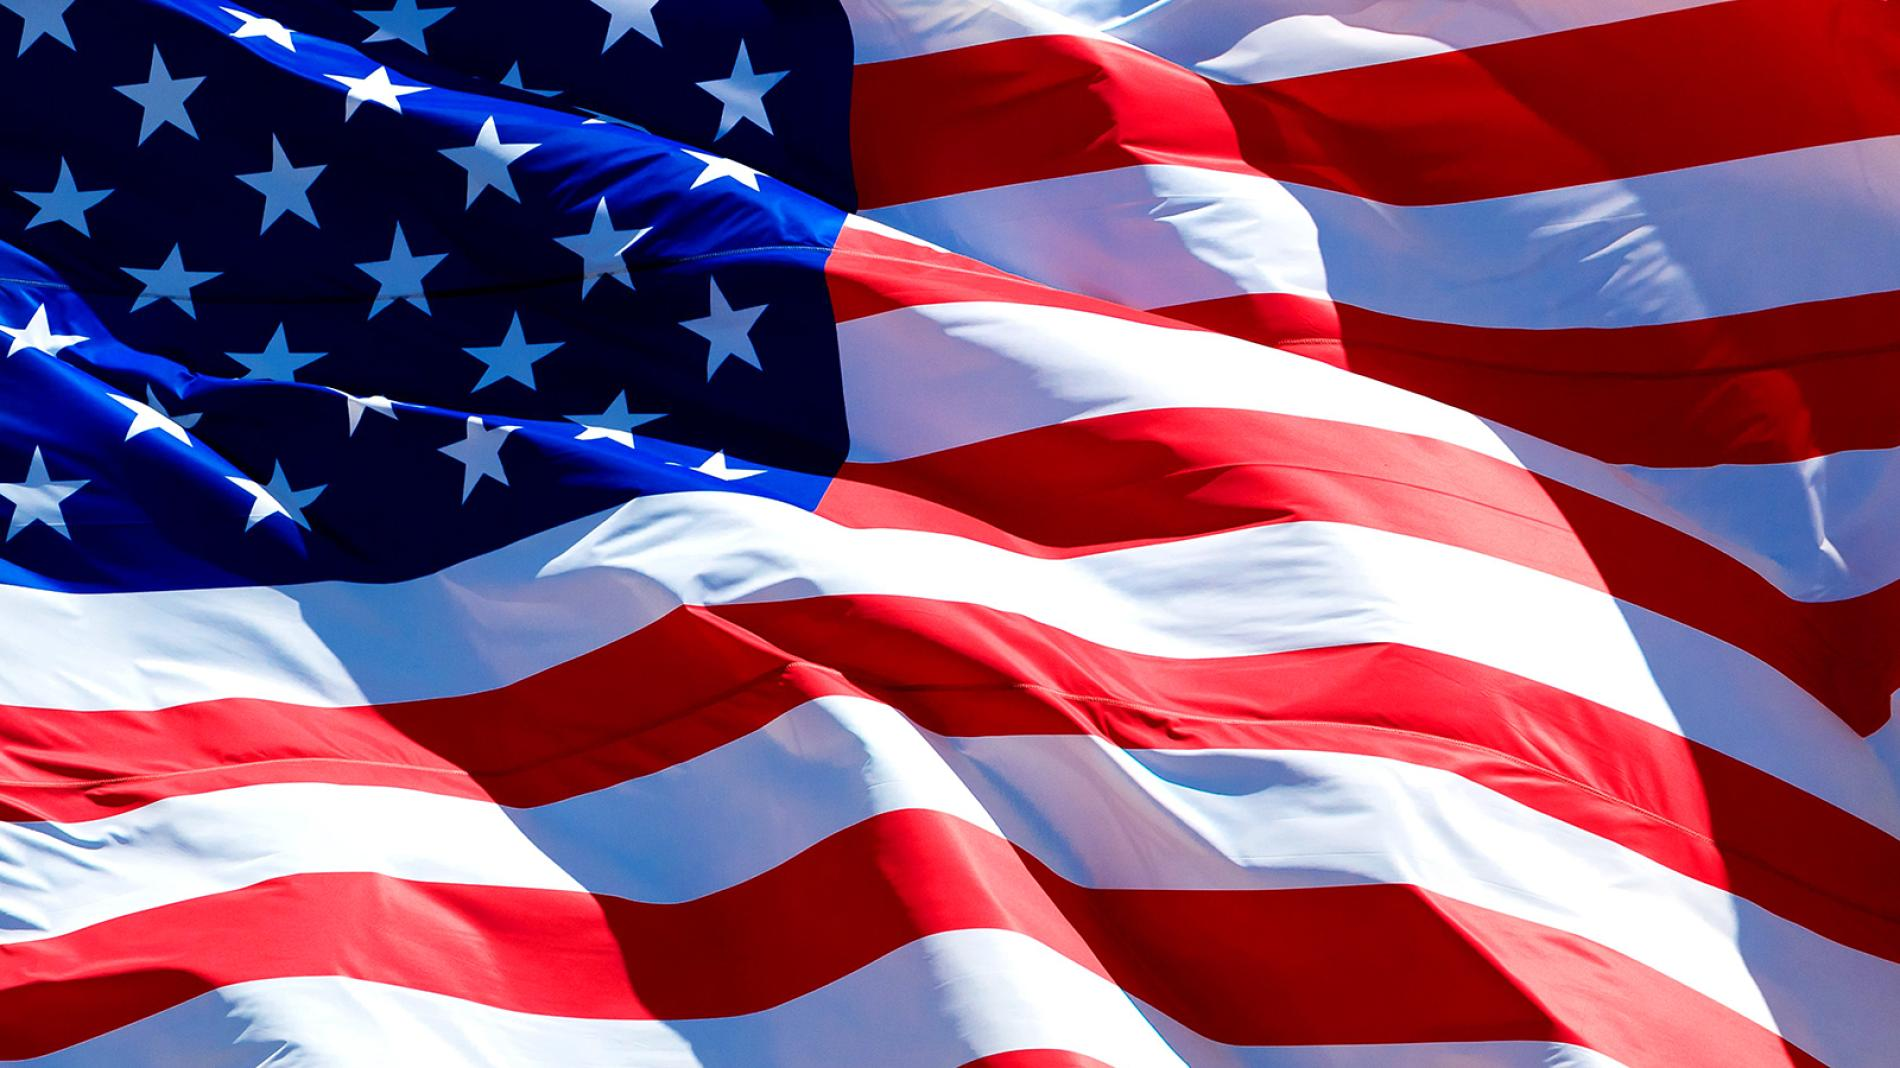 independence-day-united-states-flag.ngsversion.1474998173690.adapt.1900.1.jpg